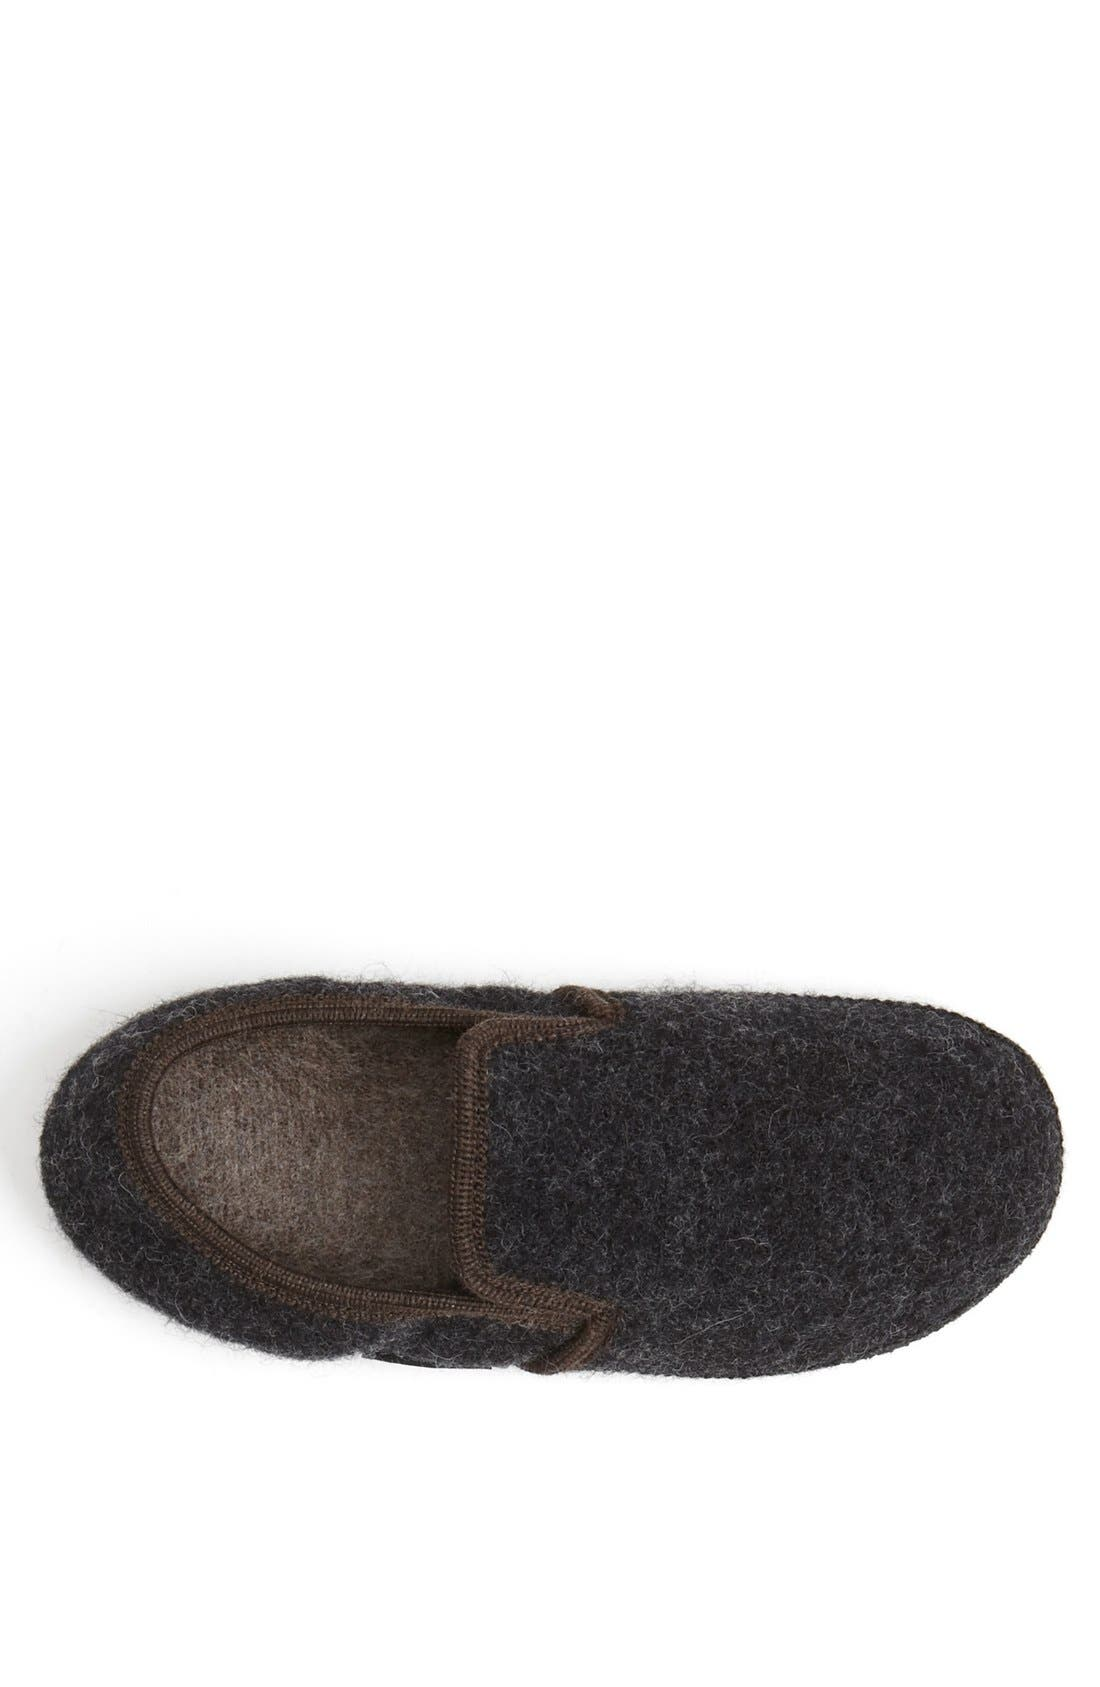 'Andau' Slipper,                             Alternate thumbnail 2, color,                             020